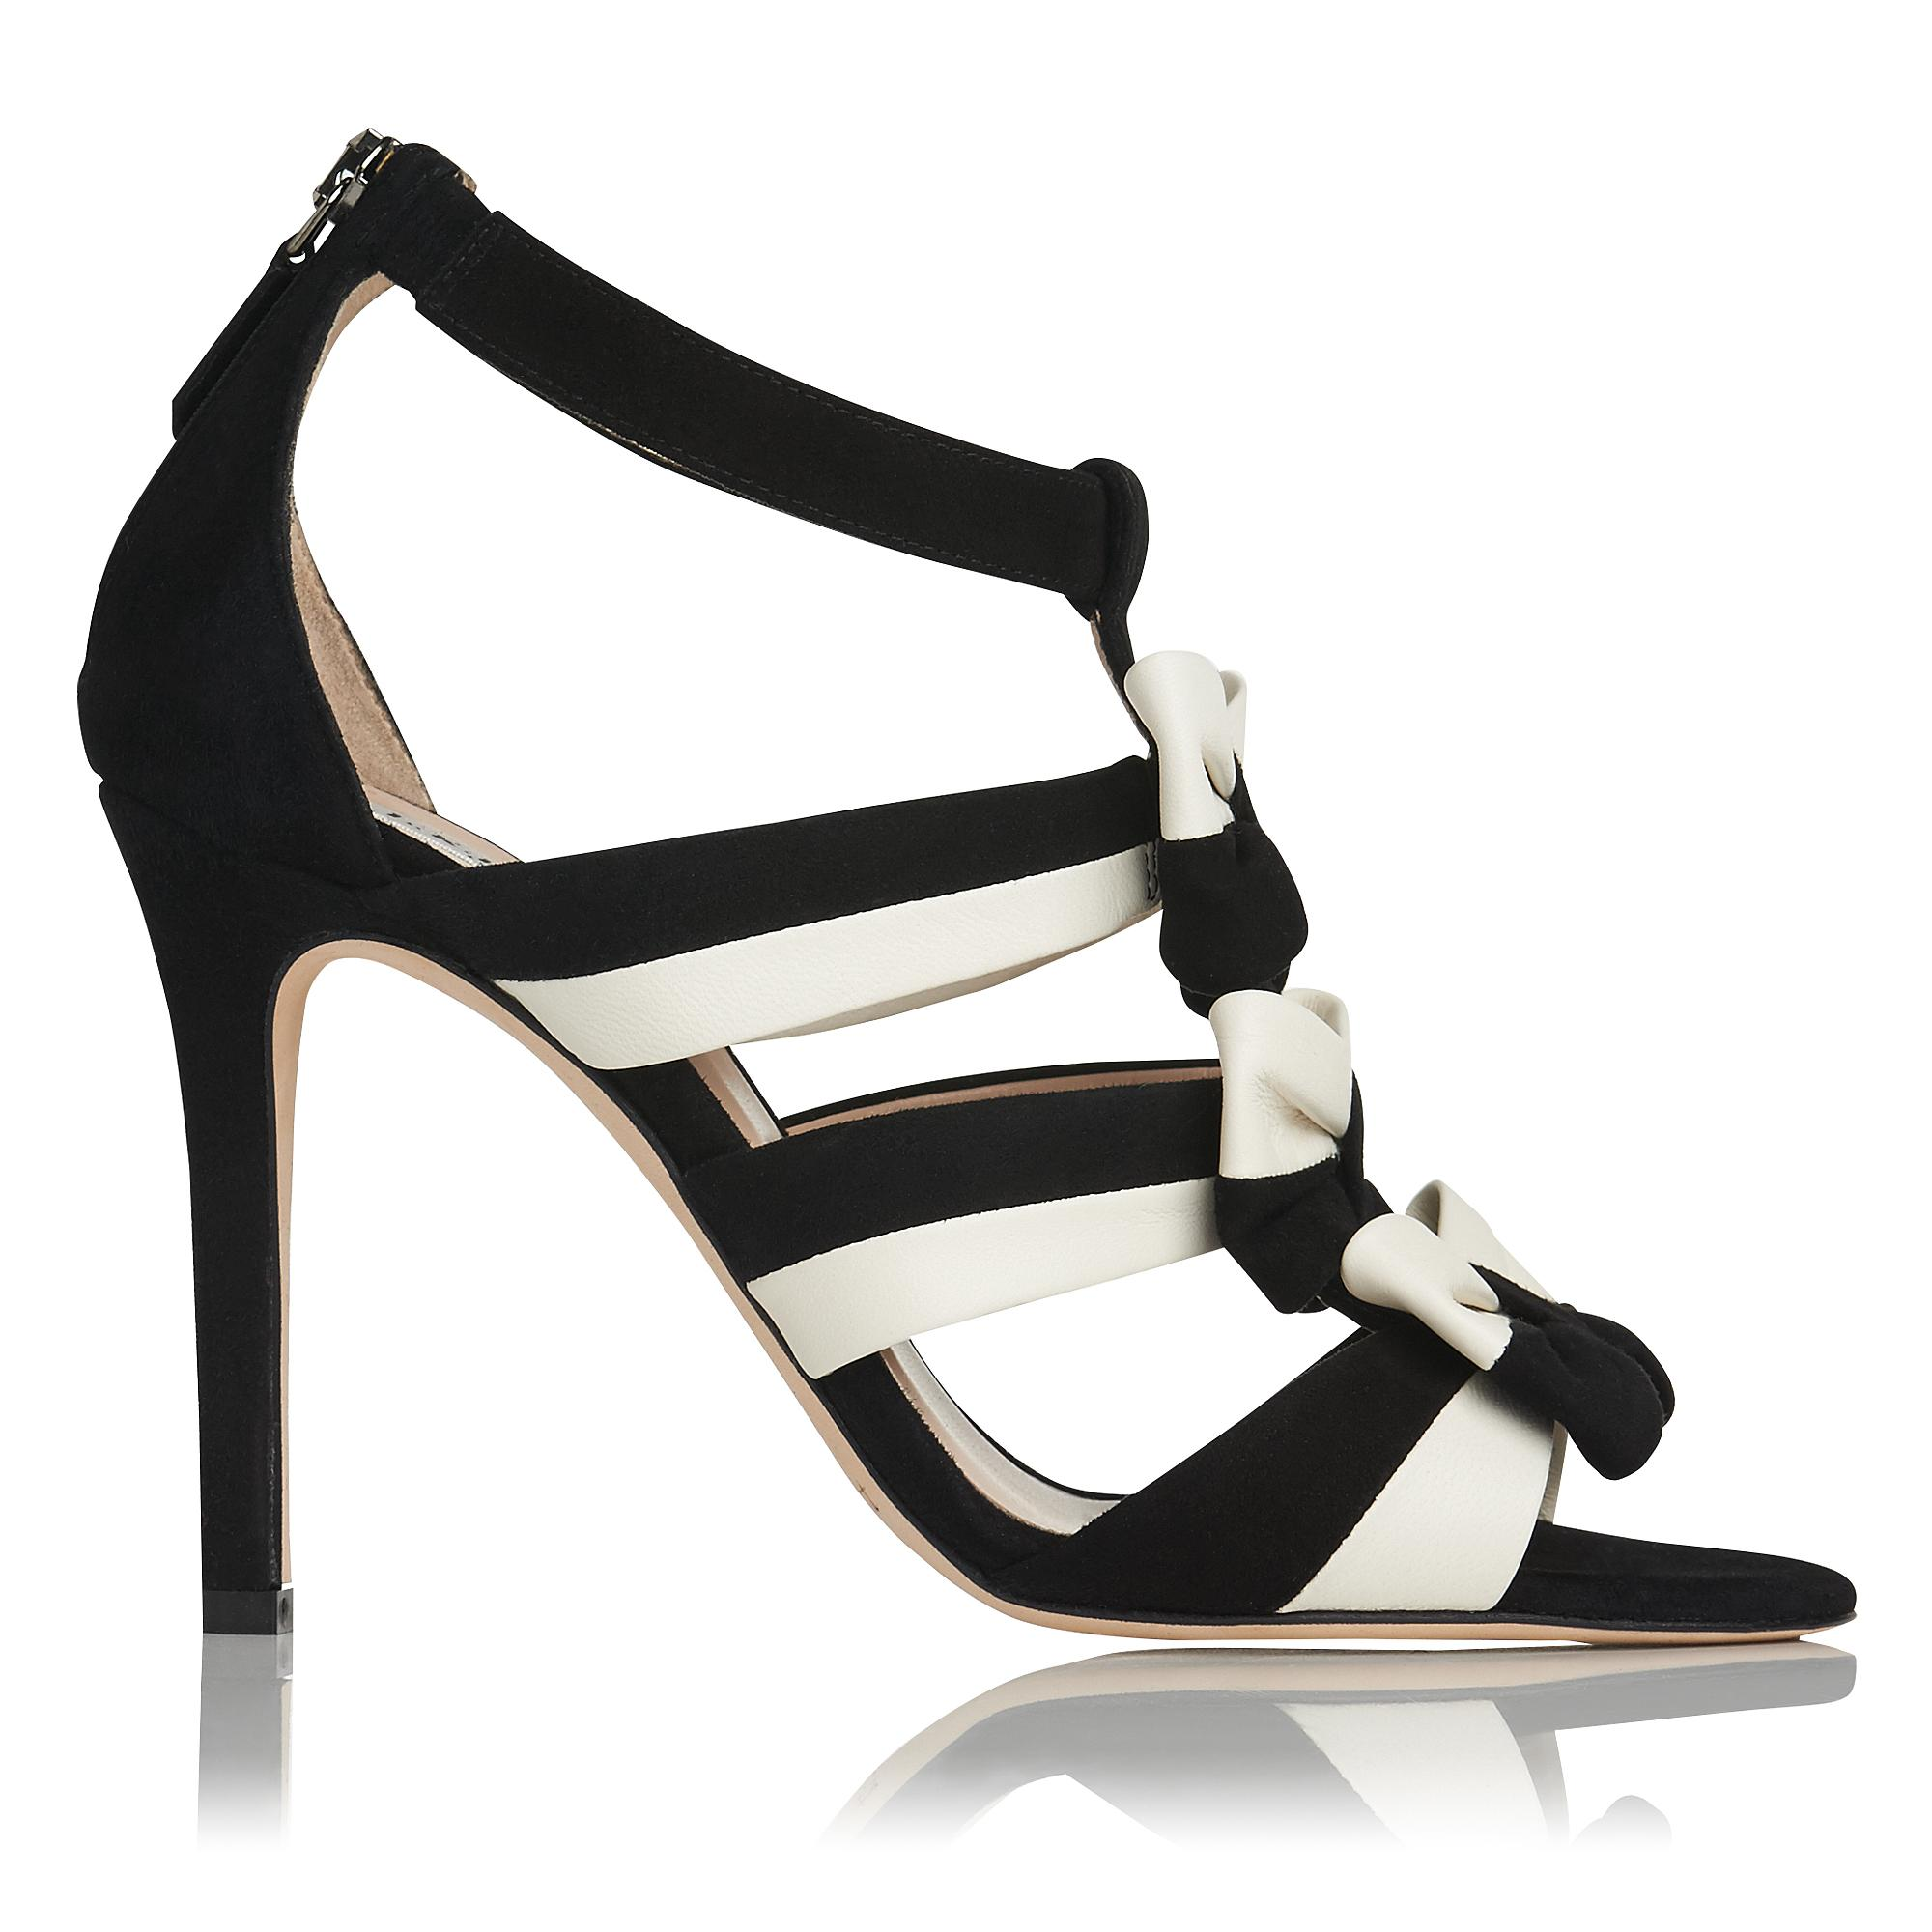 Issie Black and White Suede Sandal